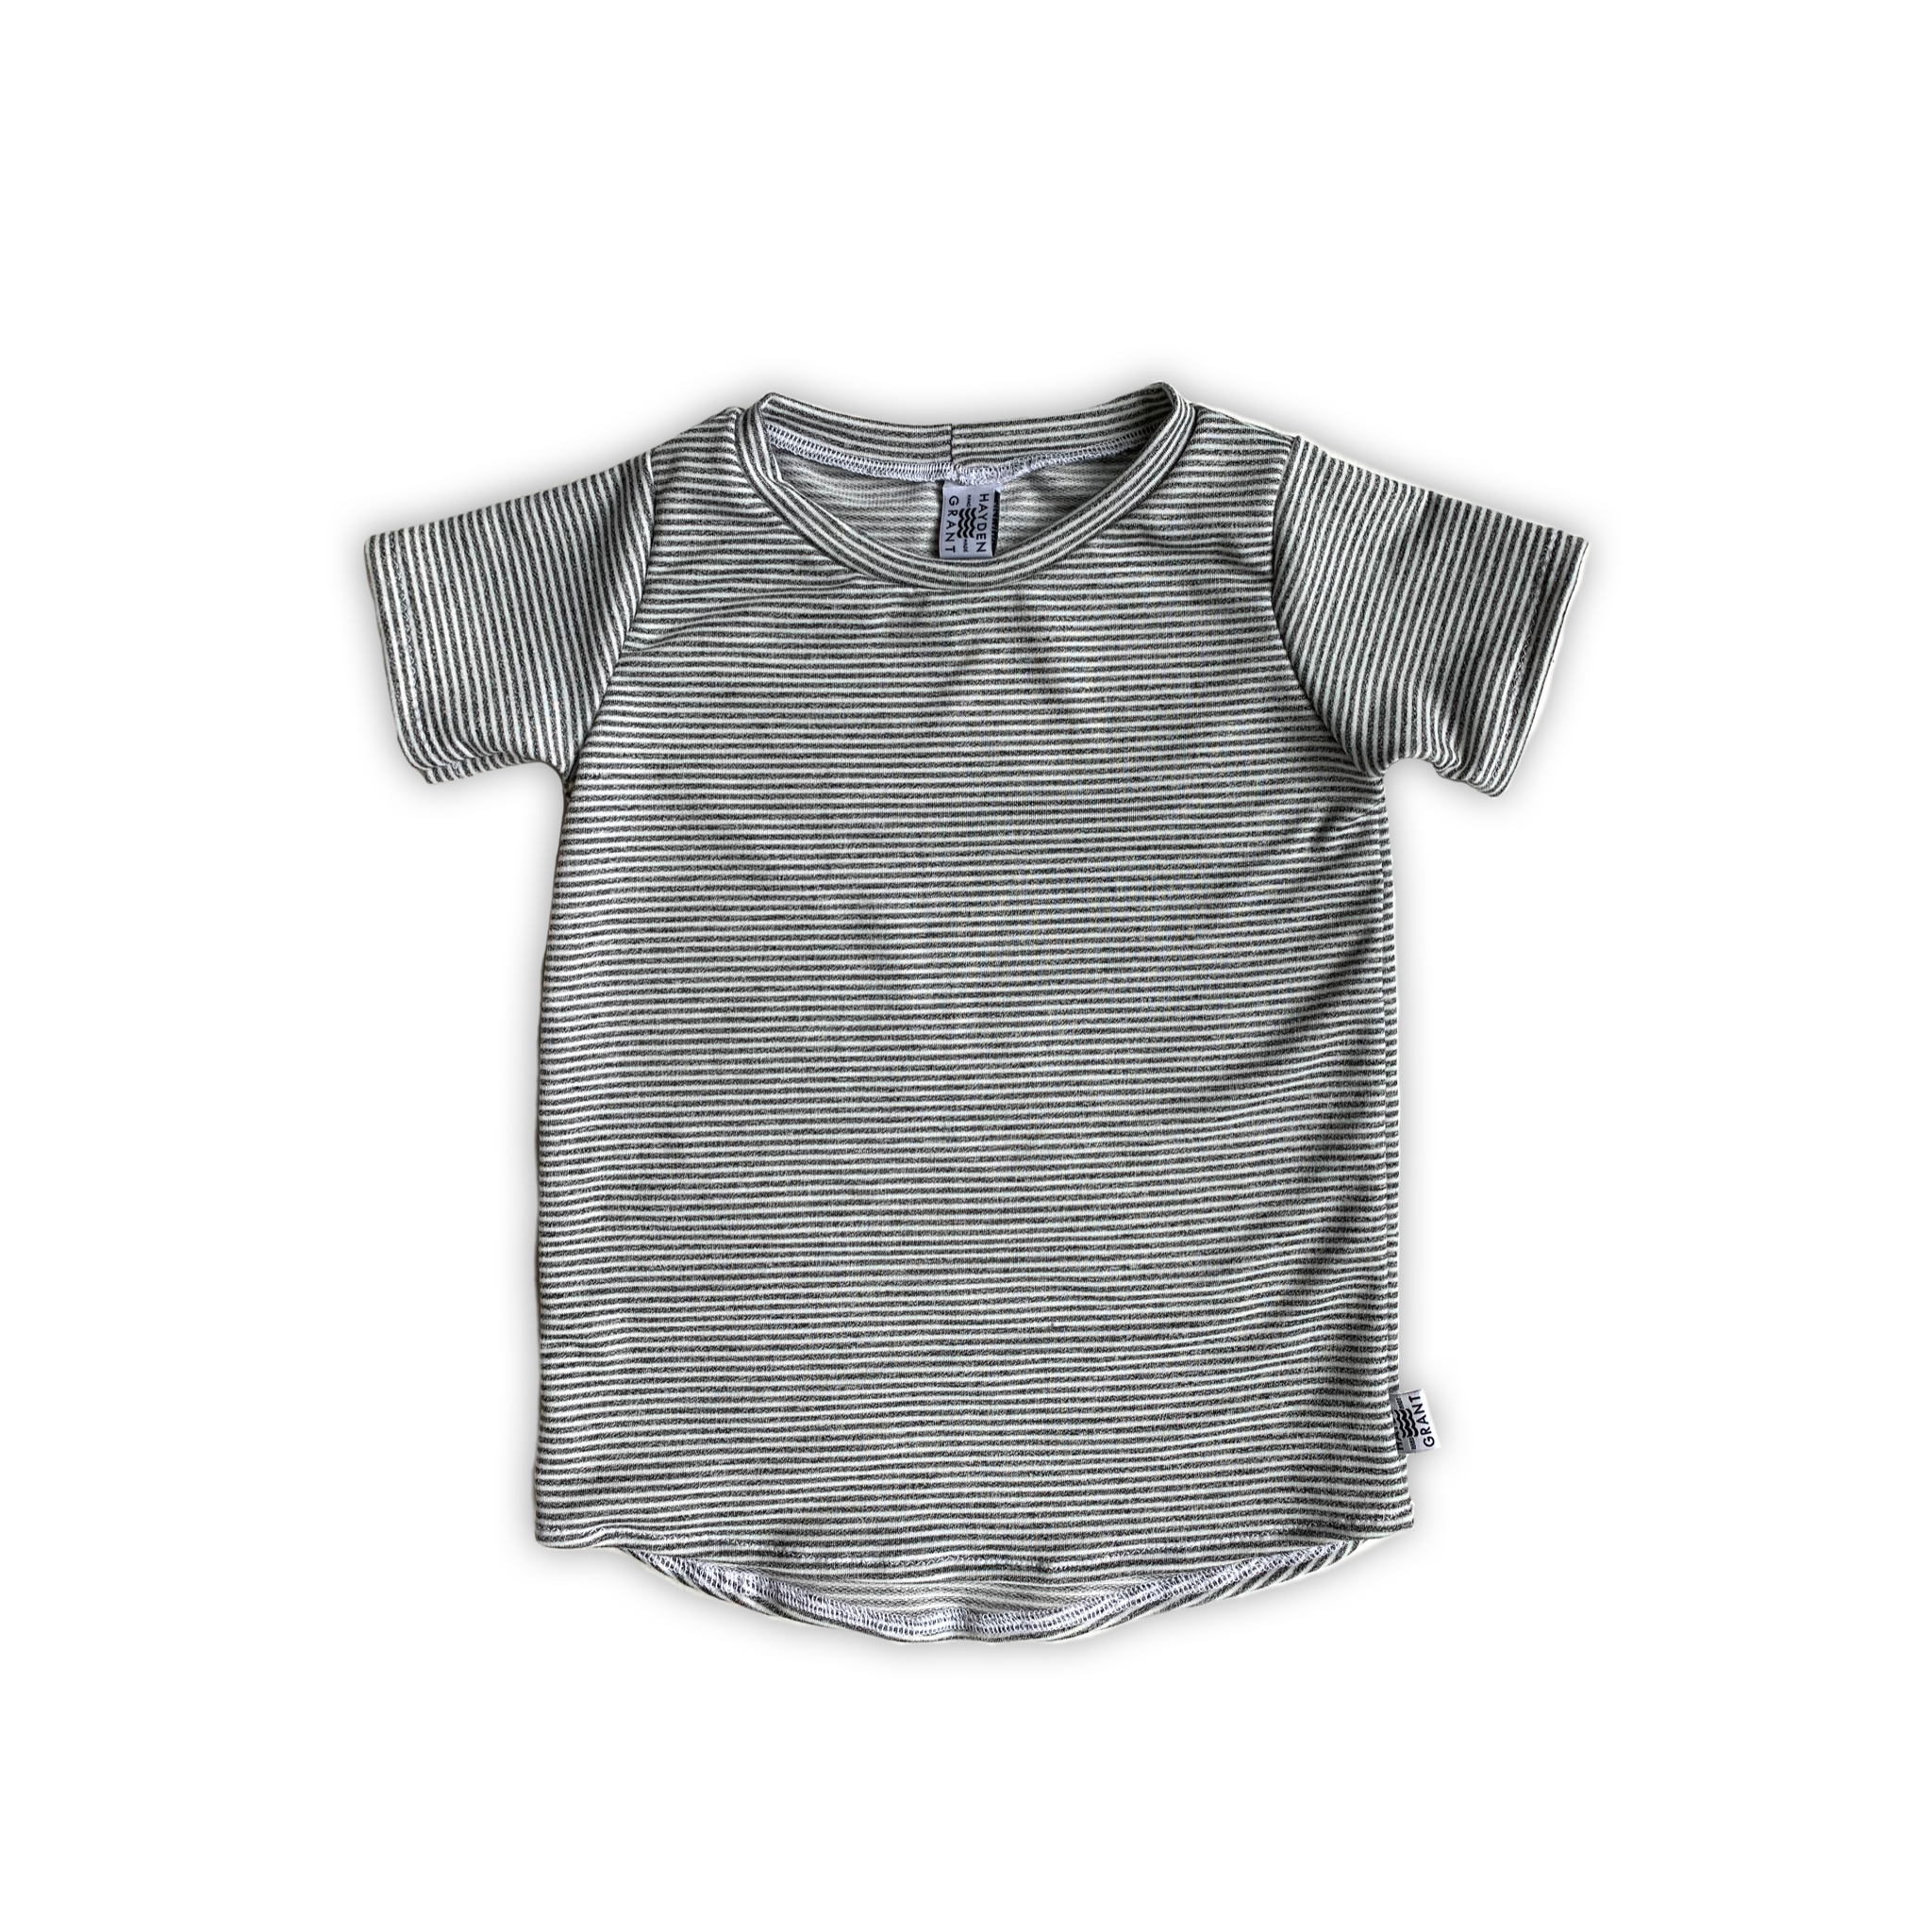 Curved Hem Tee in Charcoal Stripe